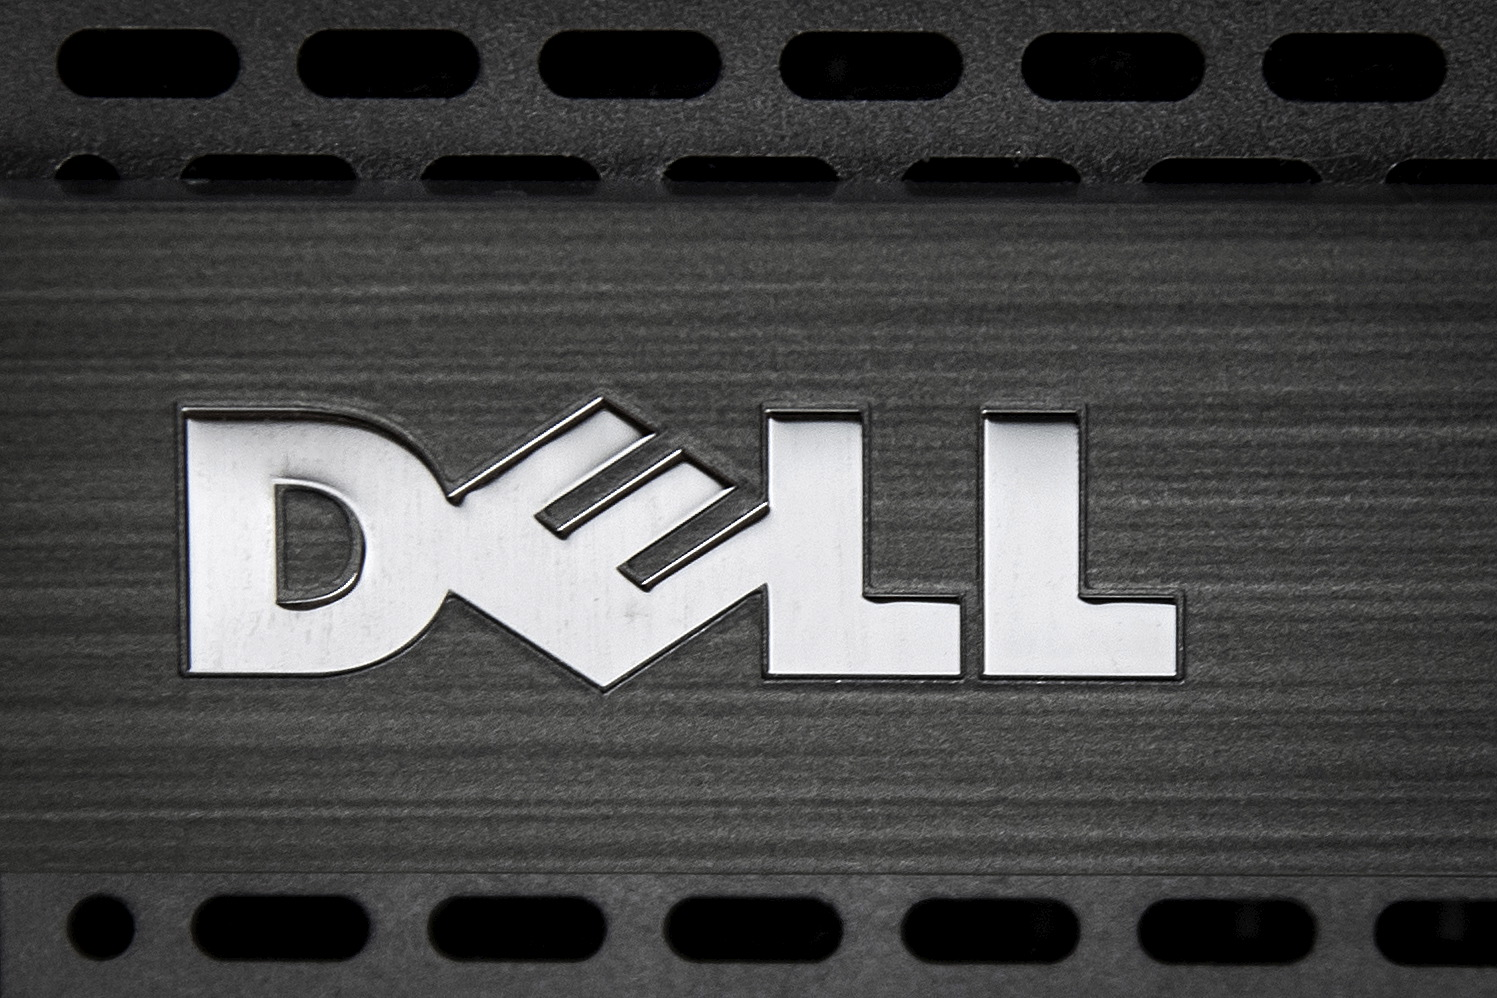 A Dell logo is pictured on the front of a computer in this photo illustration in the Manhattan borough of New York October 12, 2015. Computer maker Dell Inc said on Monday it had agreed to buy data storage company EMC Corp in a $67 billion record technology deal that will unite two mature companies and create an enterprise technology powerhouse.   REUTERS/Carlo Allegri - GF10000242244